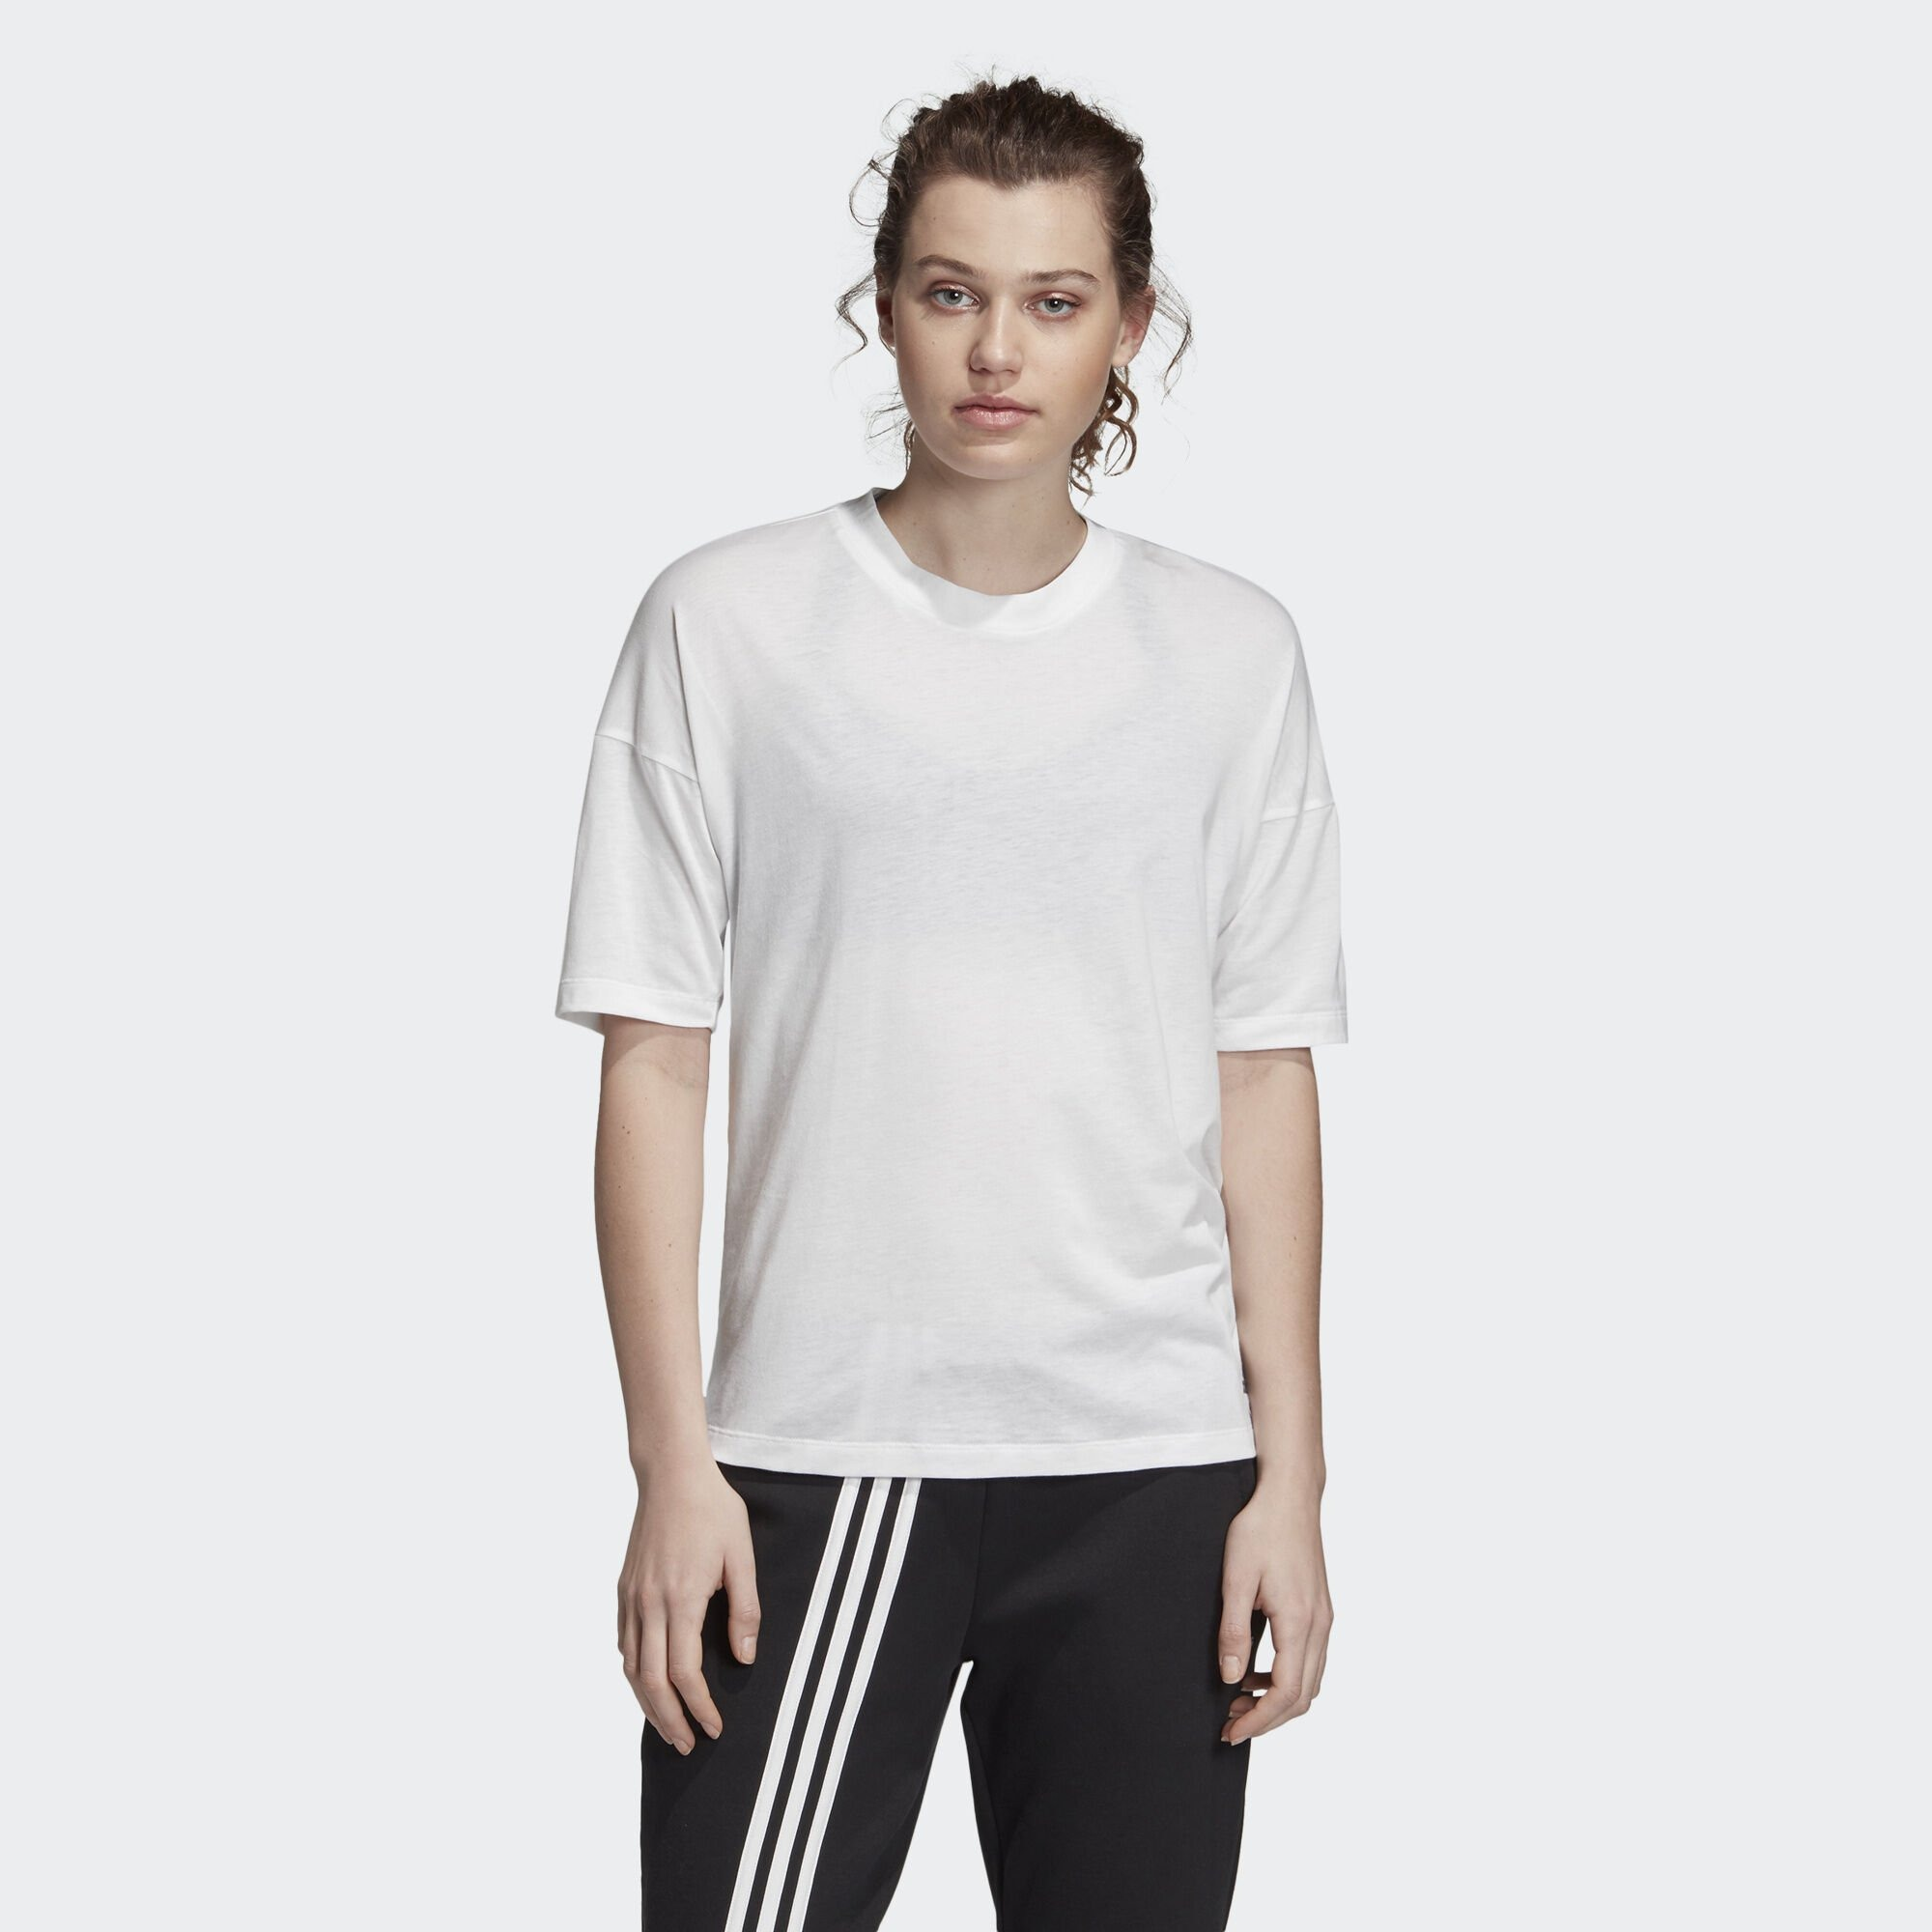 ADIDAS Must Haves 3 Stripes T shirt | Perrysport